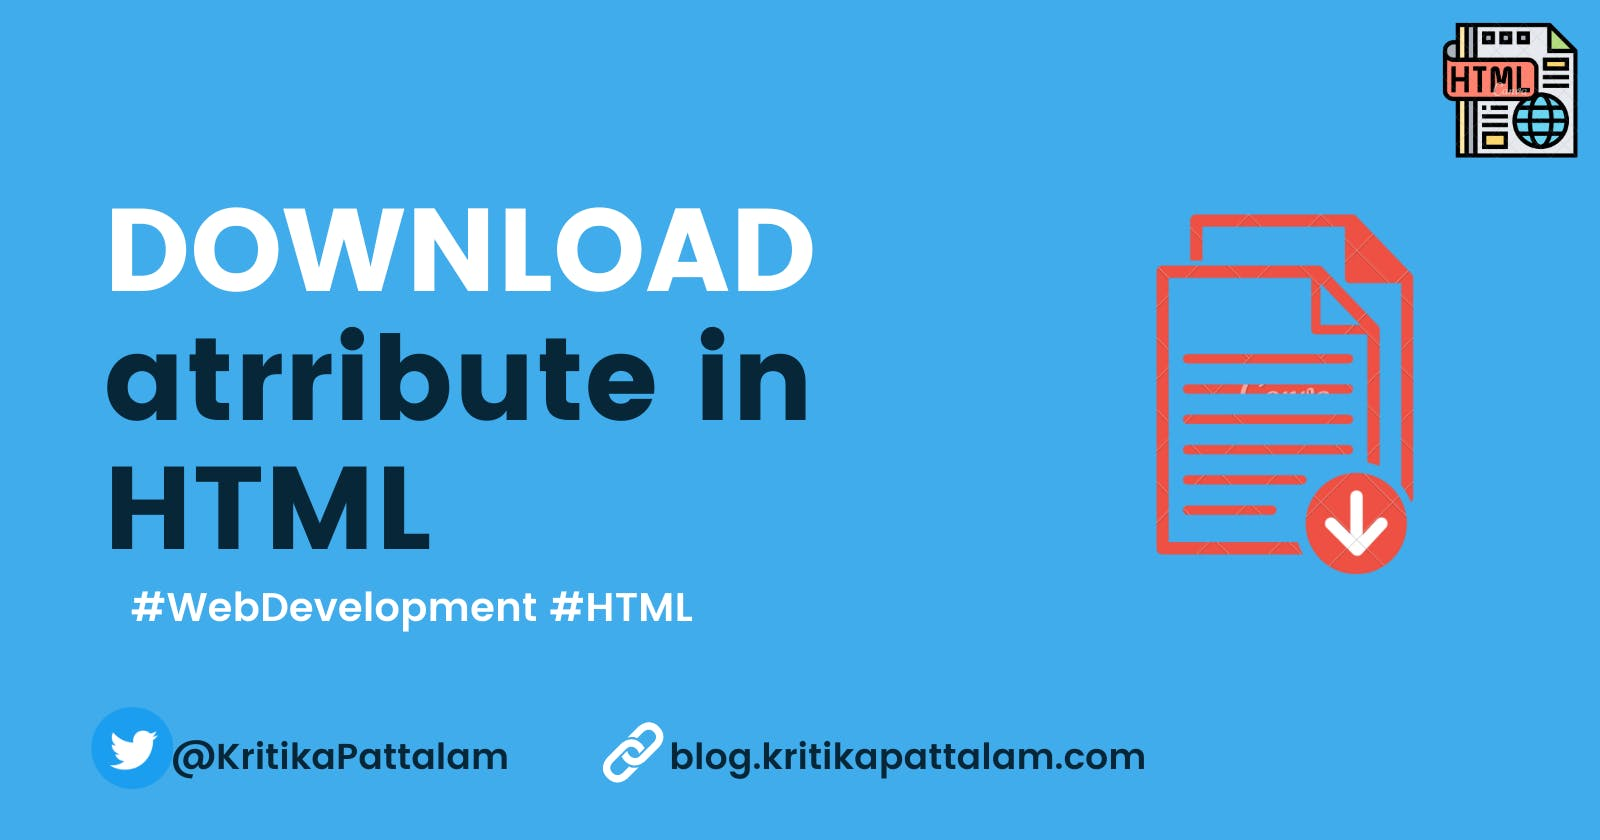 Create a DOWNLOAD link in a single line of HTML